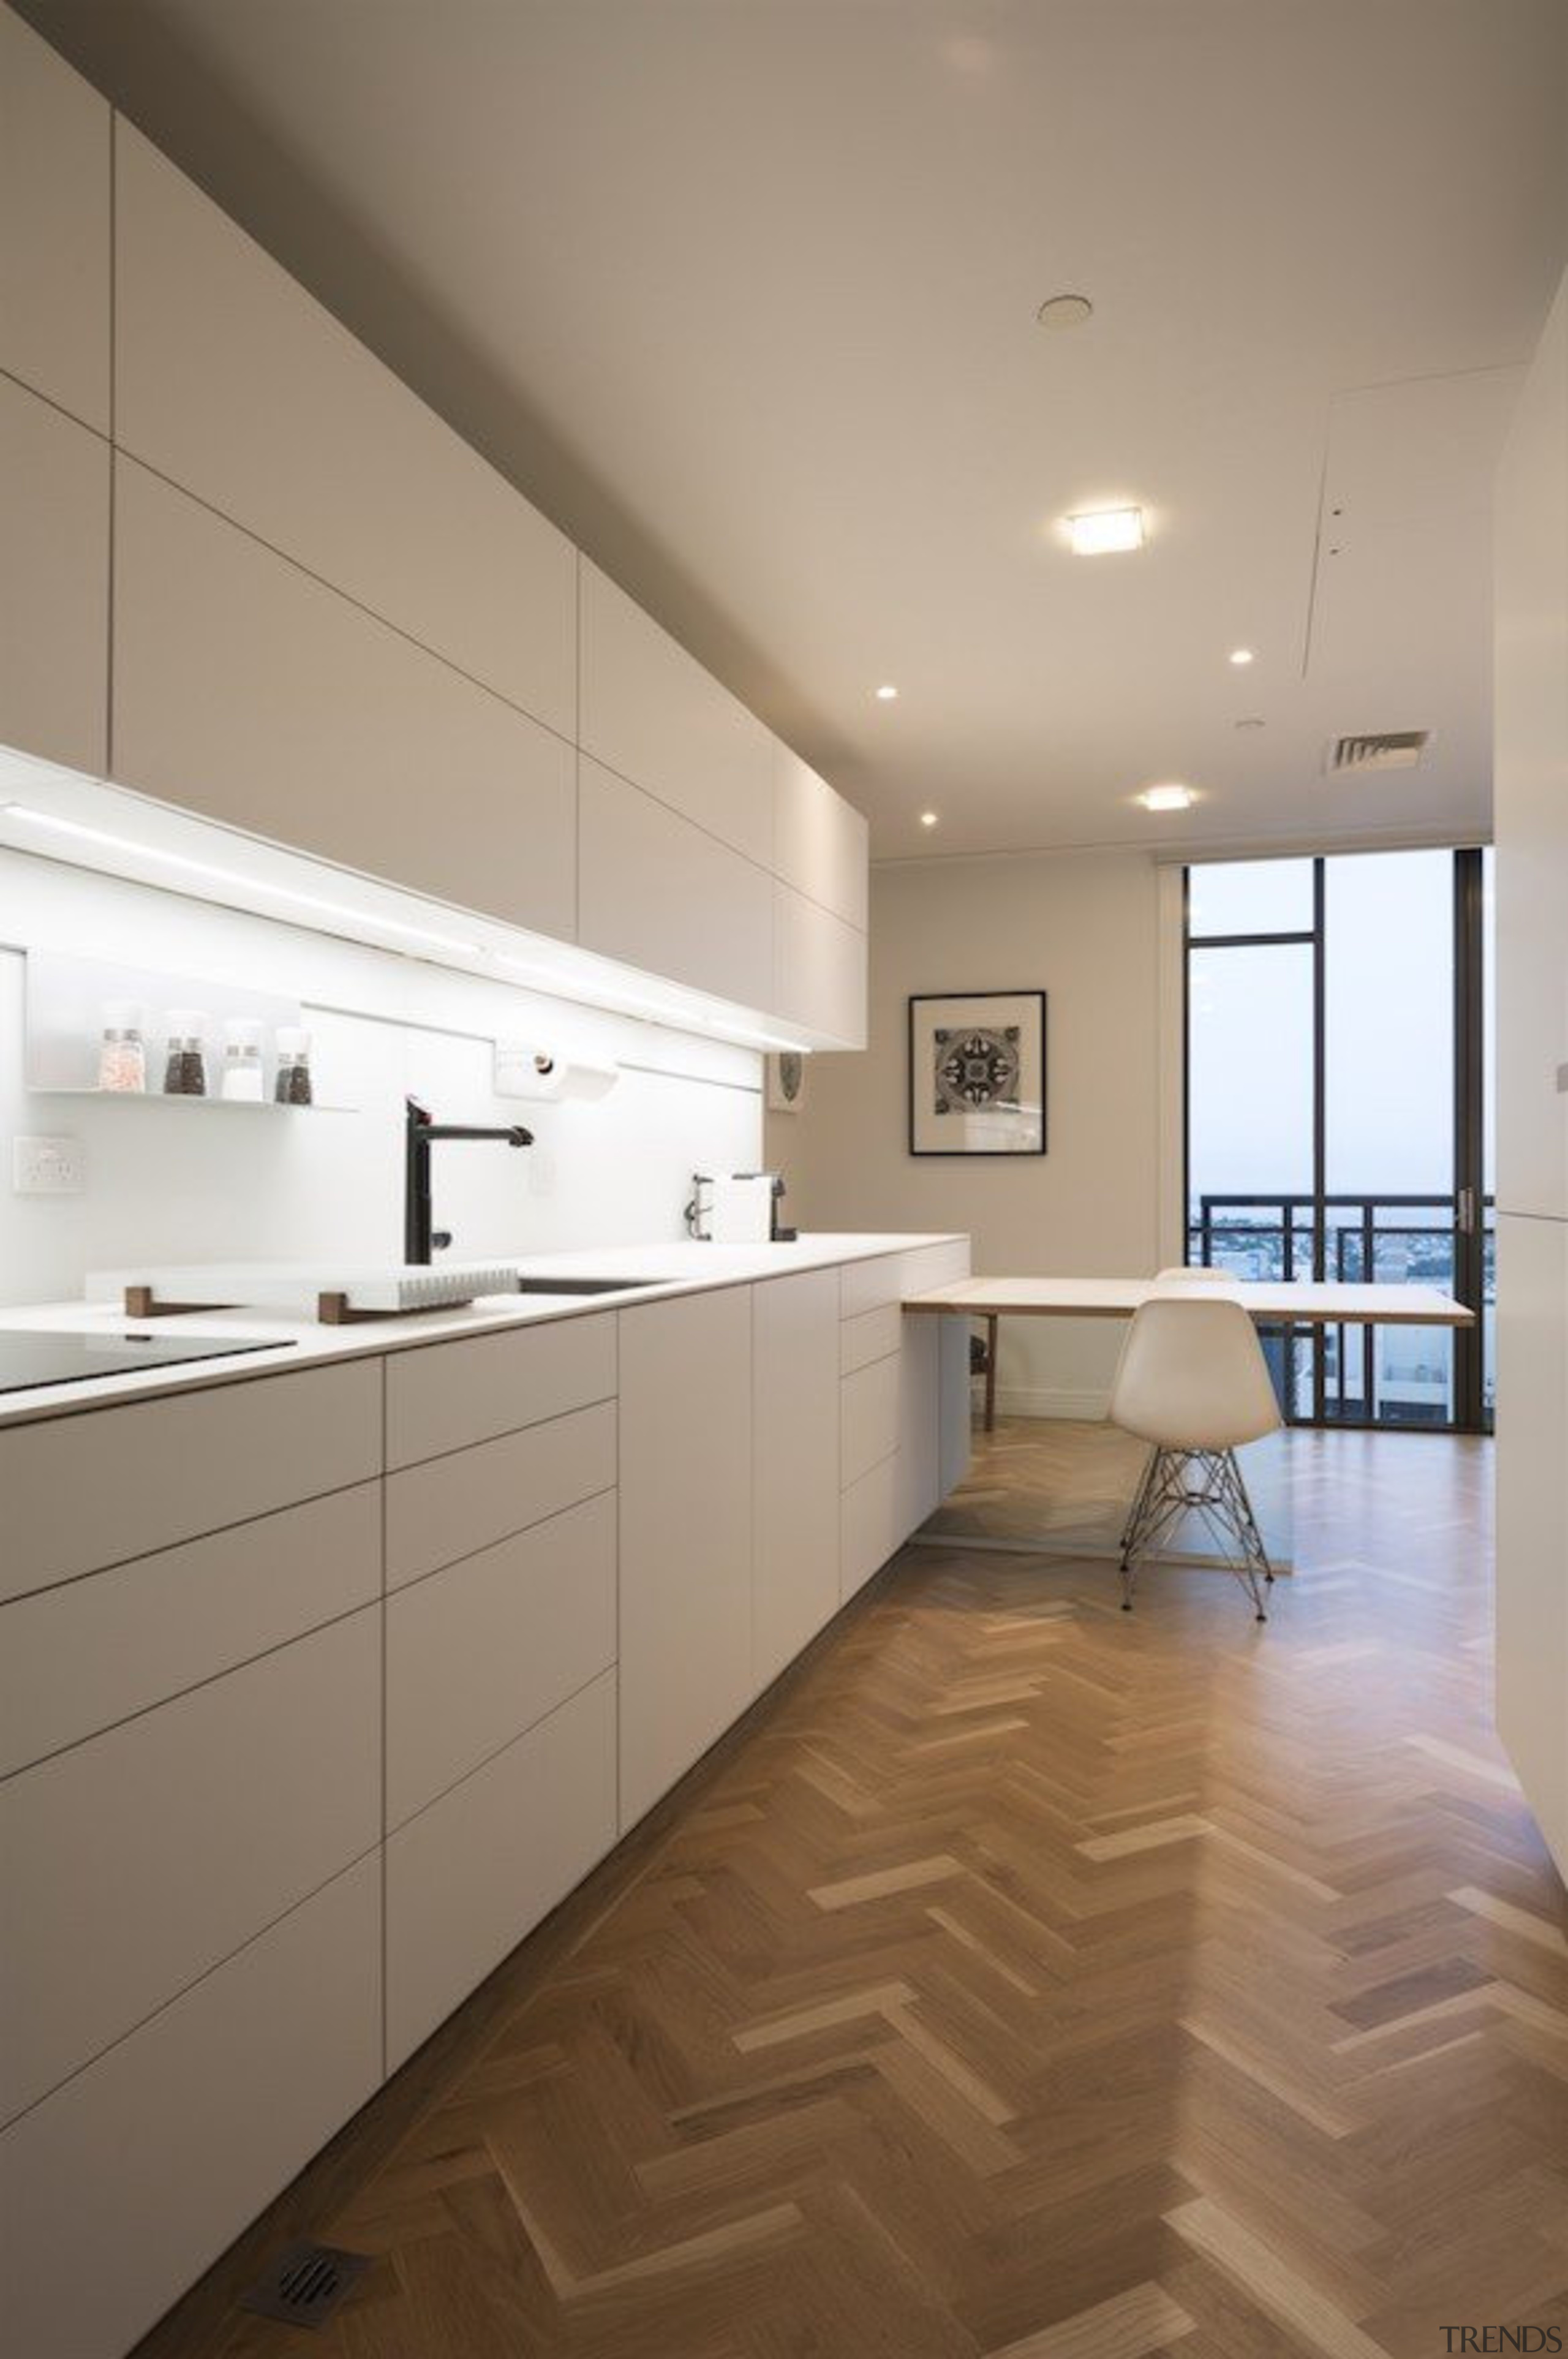 Highly Commended in the Category Imported Kitchen - architecture, cabinetry, ceiling, countertop, daylighting, floor, flooring, hardwood, interior design, kitchen, laminate flooring, real estate, room, tile, wood, wood flooring, gray, brown